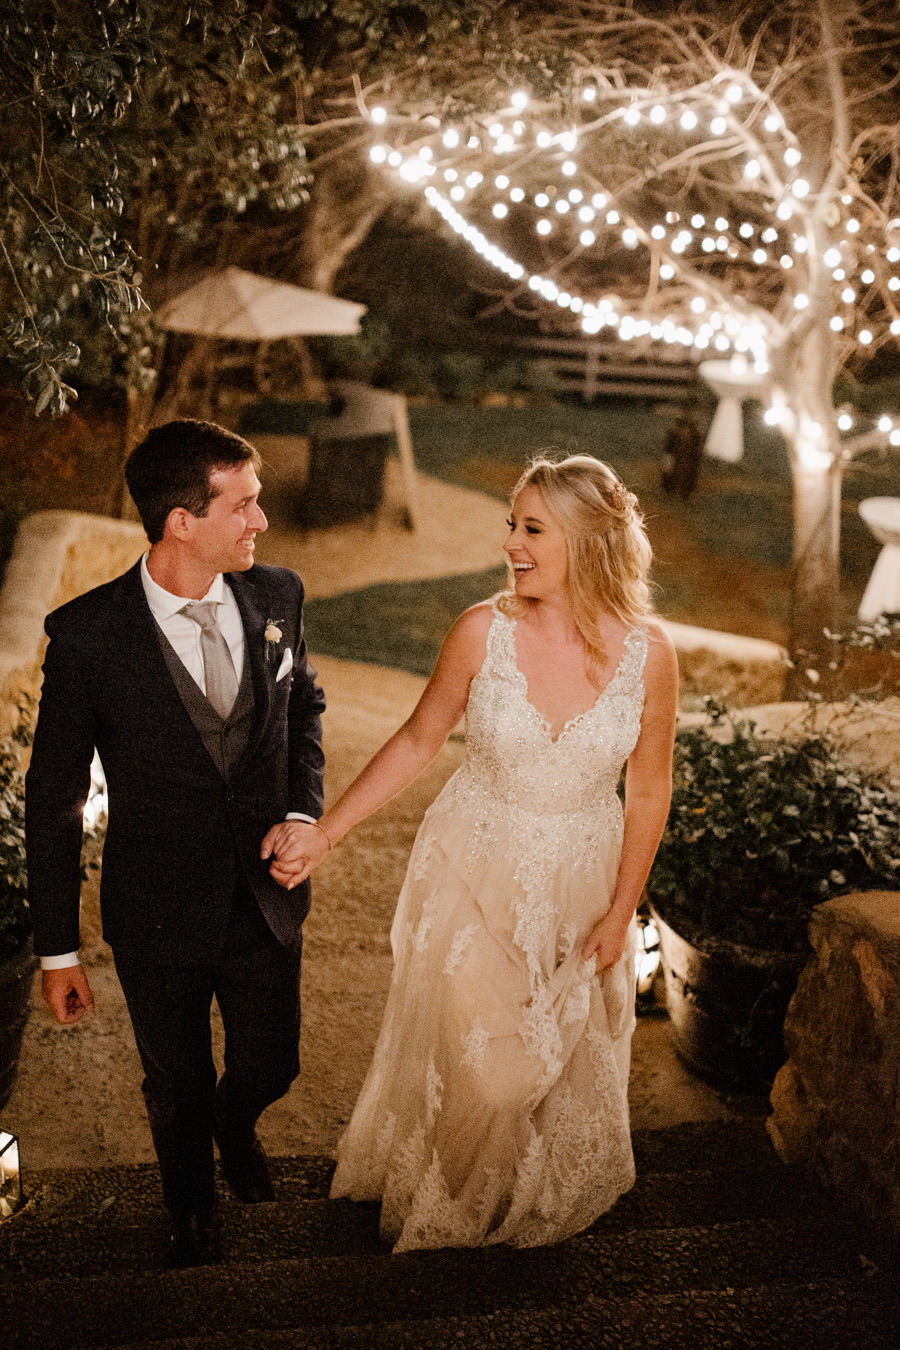 moments in between bride and groom walking up the stairs with string lights on the back